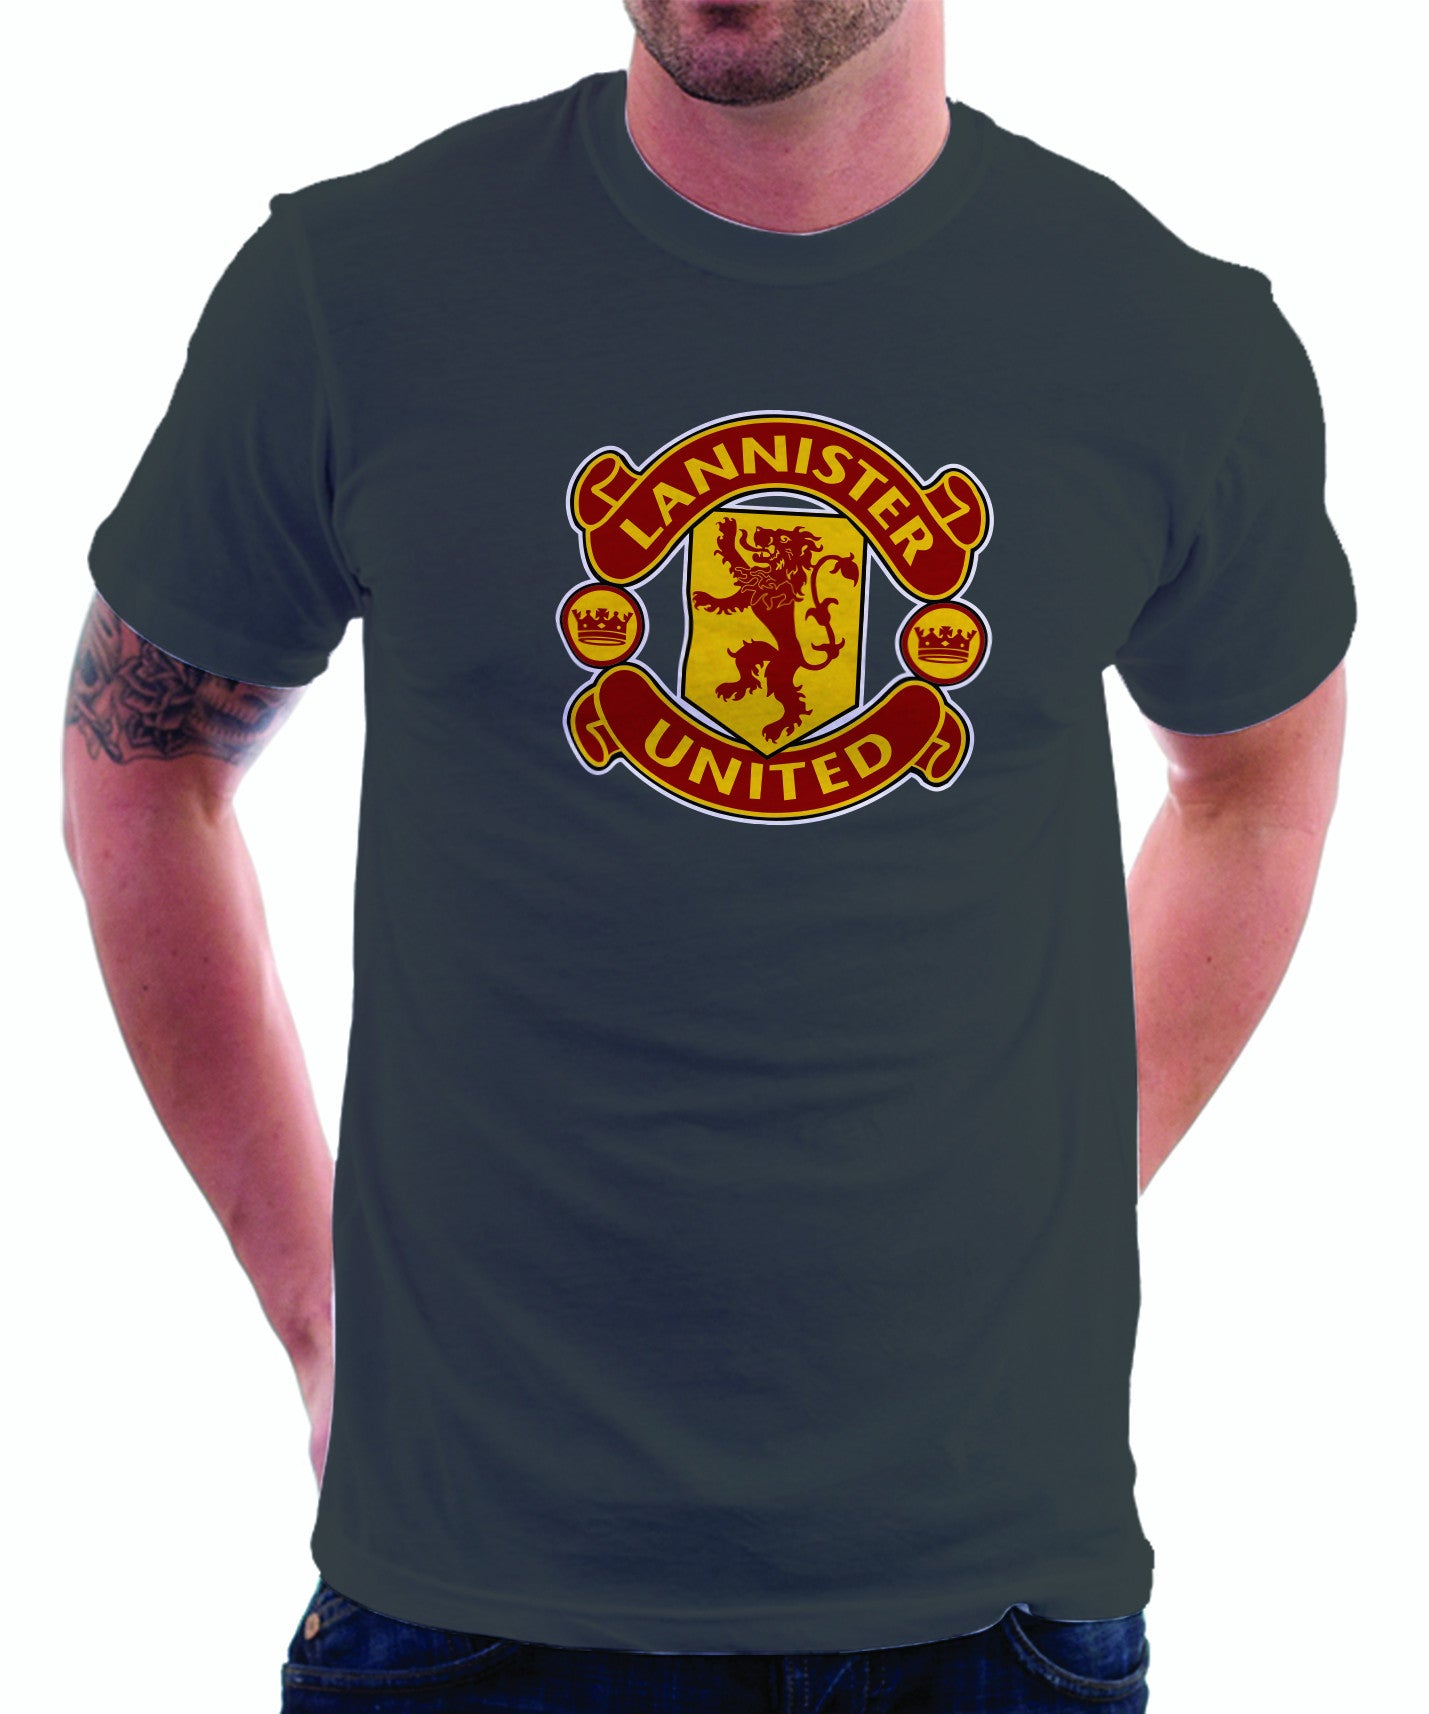 a771e96b8b3 LIMITED EDITION  Game of Thrones Manchester United Logo Parody Spoof t-shirt   House